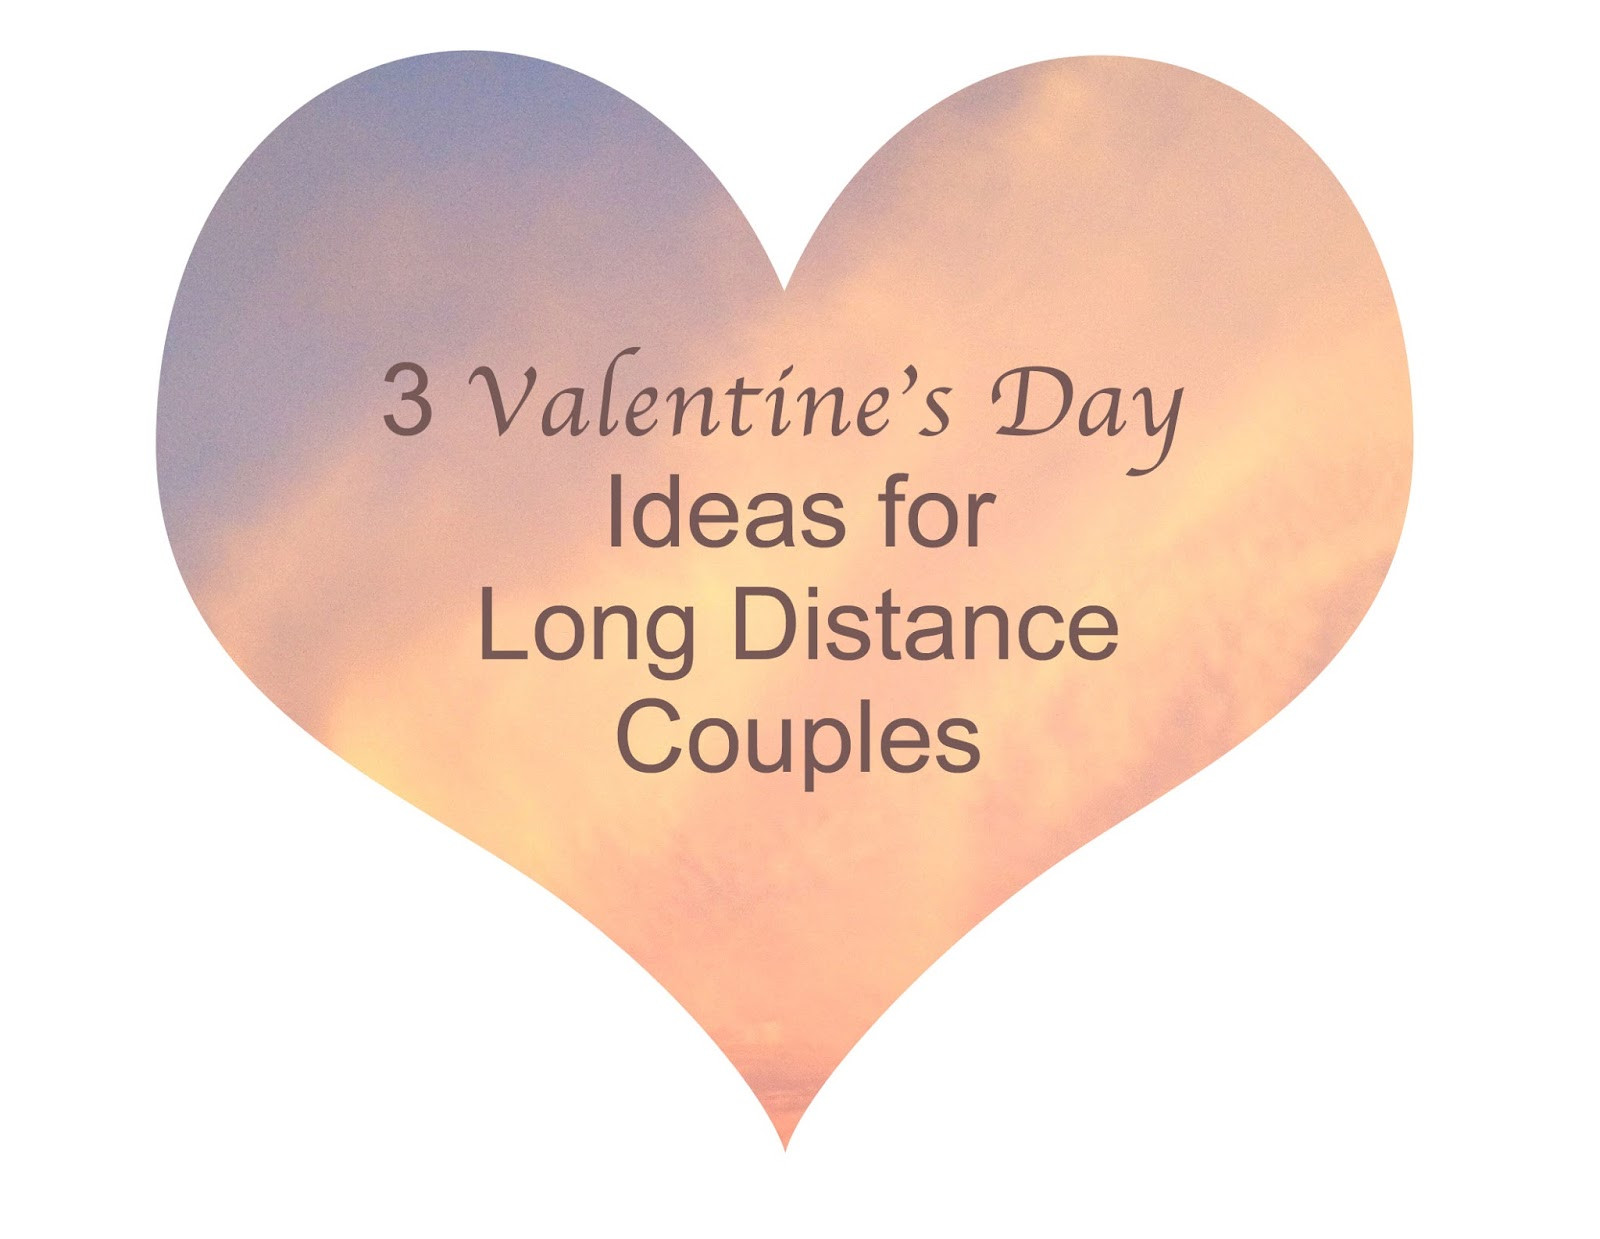 Valentine Gift Ideas For Long Distance Relationships  Meet Me In Midtown 3 Valentine s Day Ideas for Long